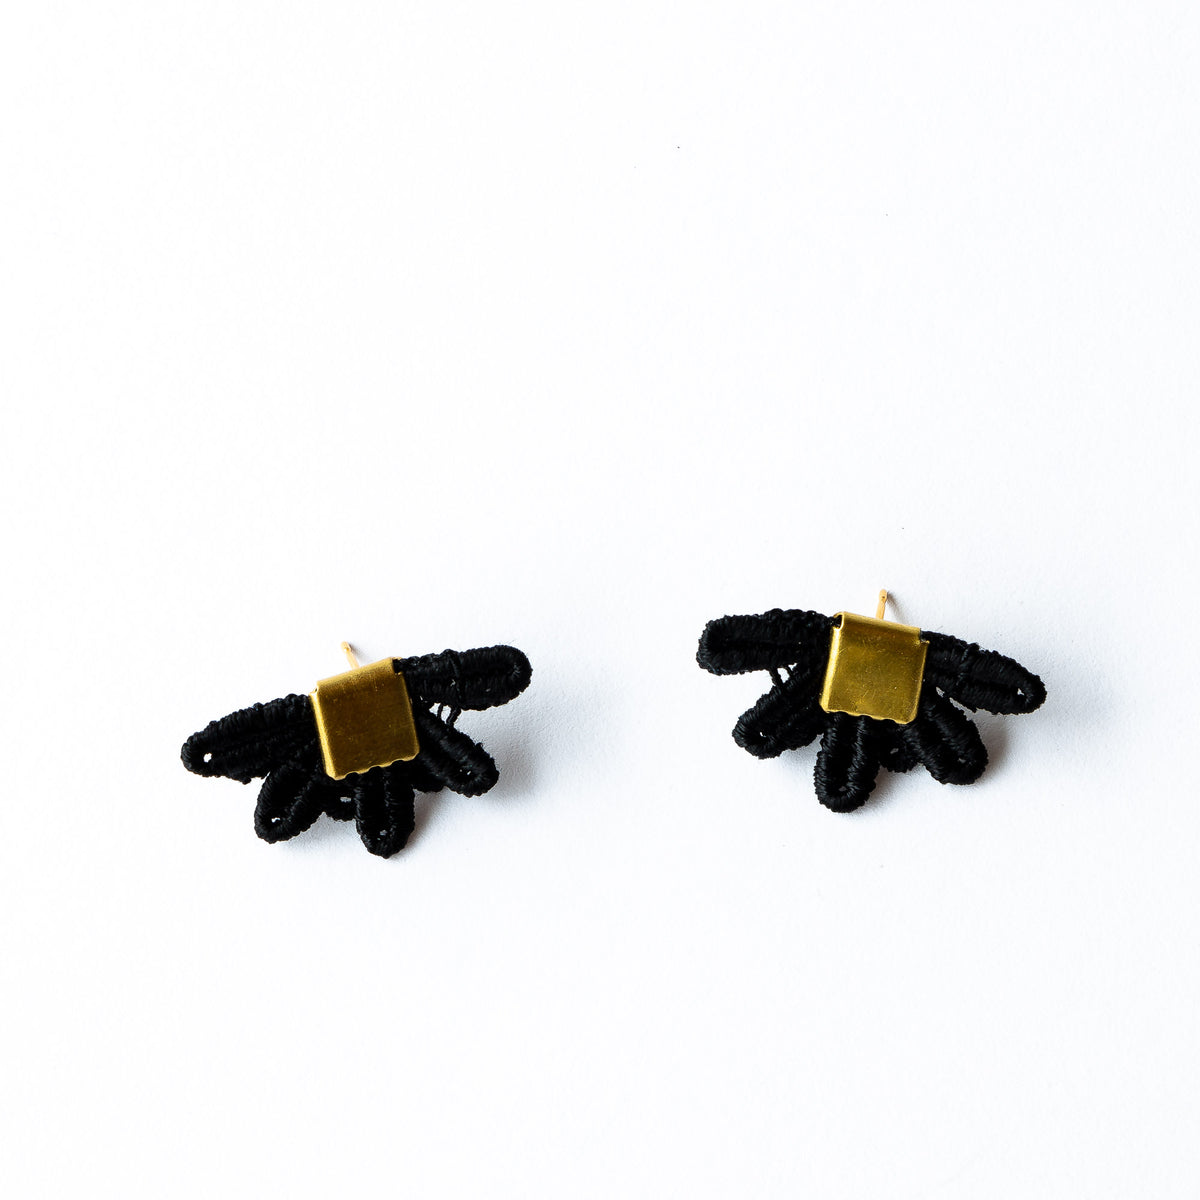 Black Lace -  Larrea - Hand Dyed Lace & Brass Stud Earrings - Sold by CHic & Basta